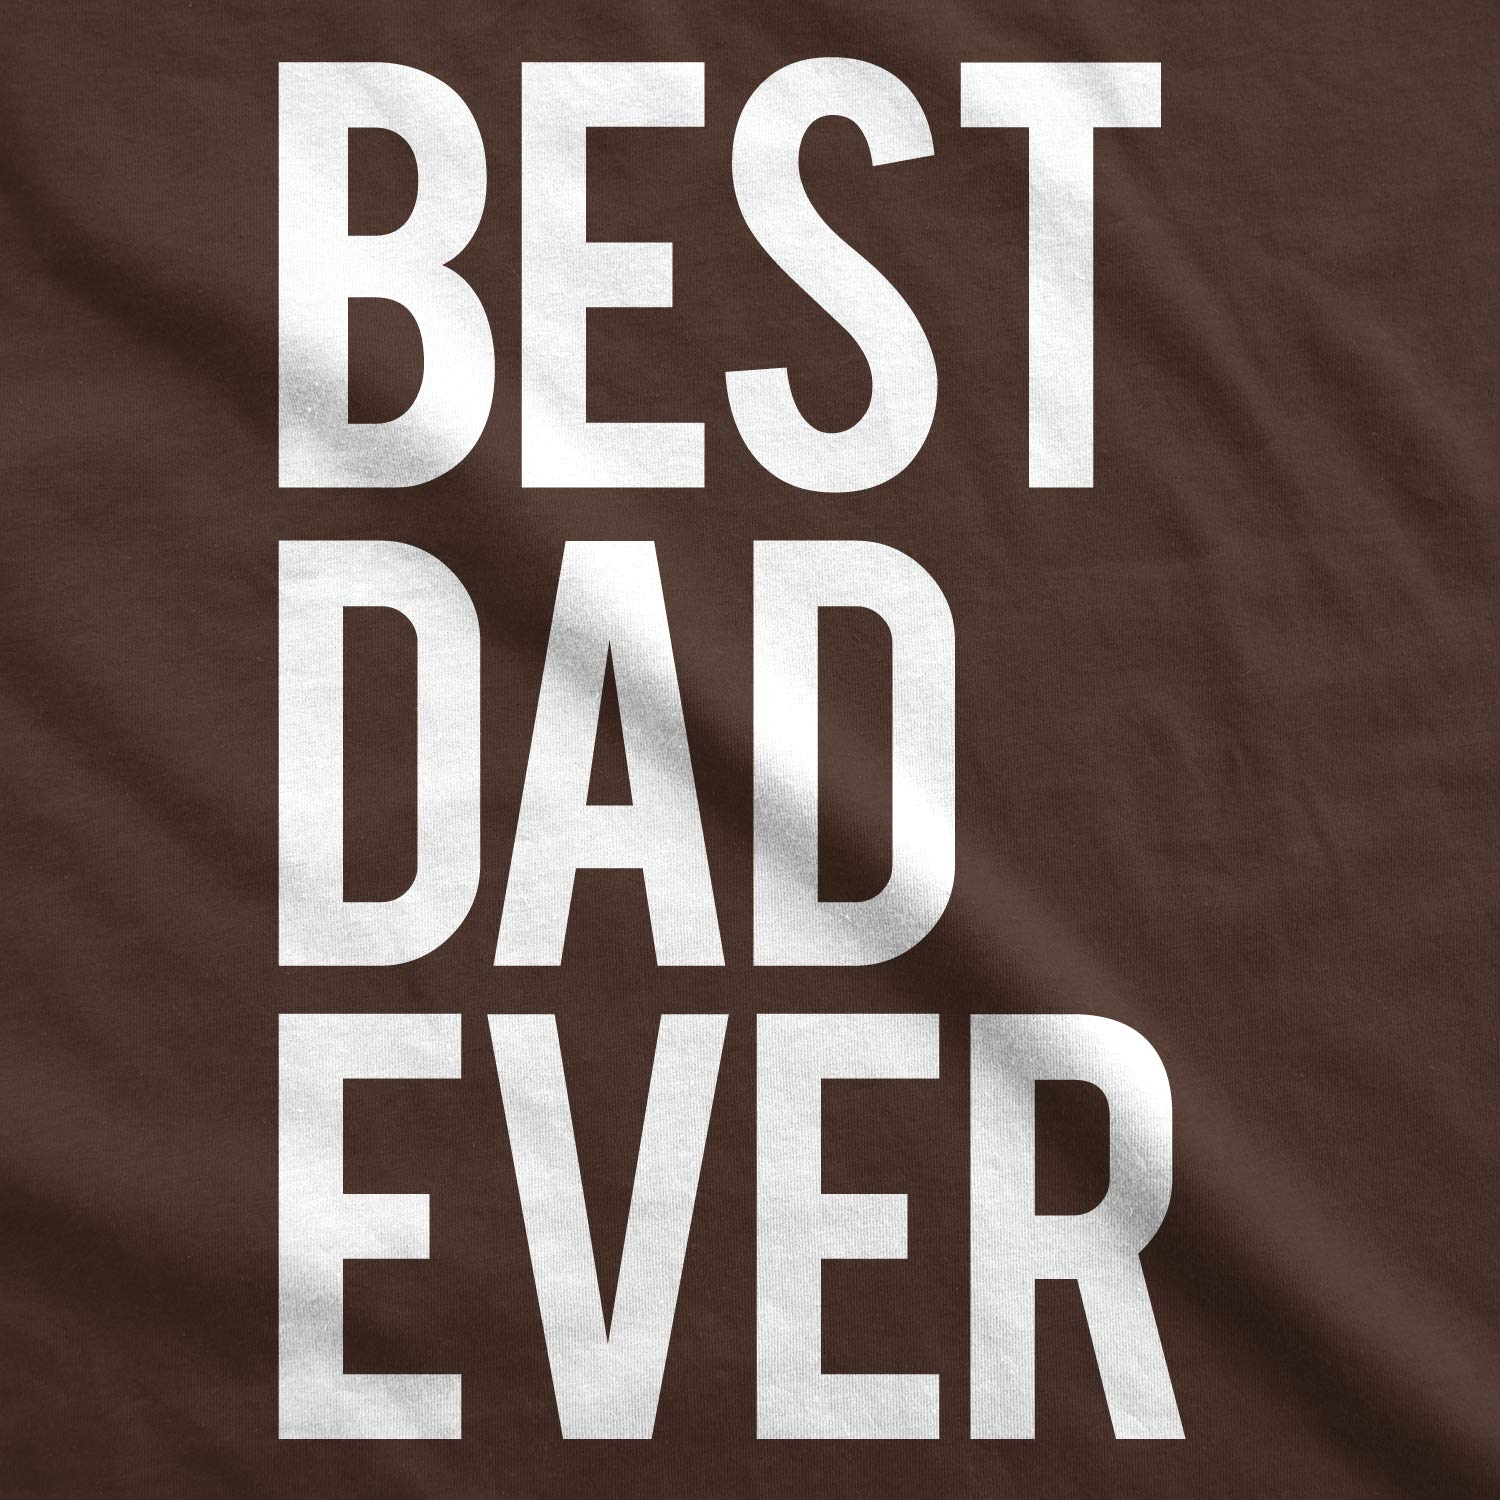 Mens Best Dad Ever T Shirt Funny Sincere Parenting Tee For Fathers Day